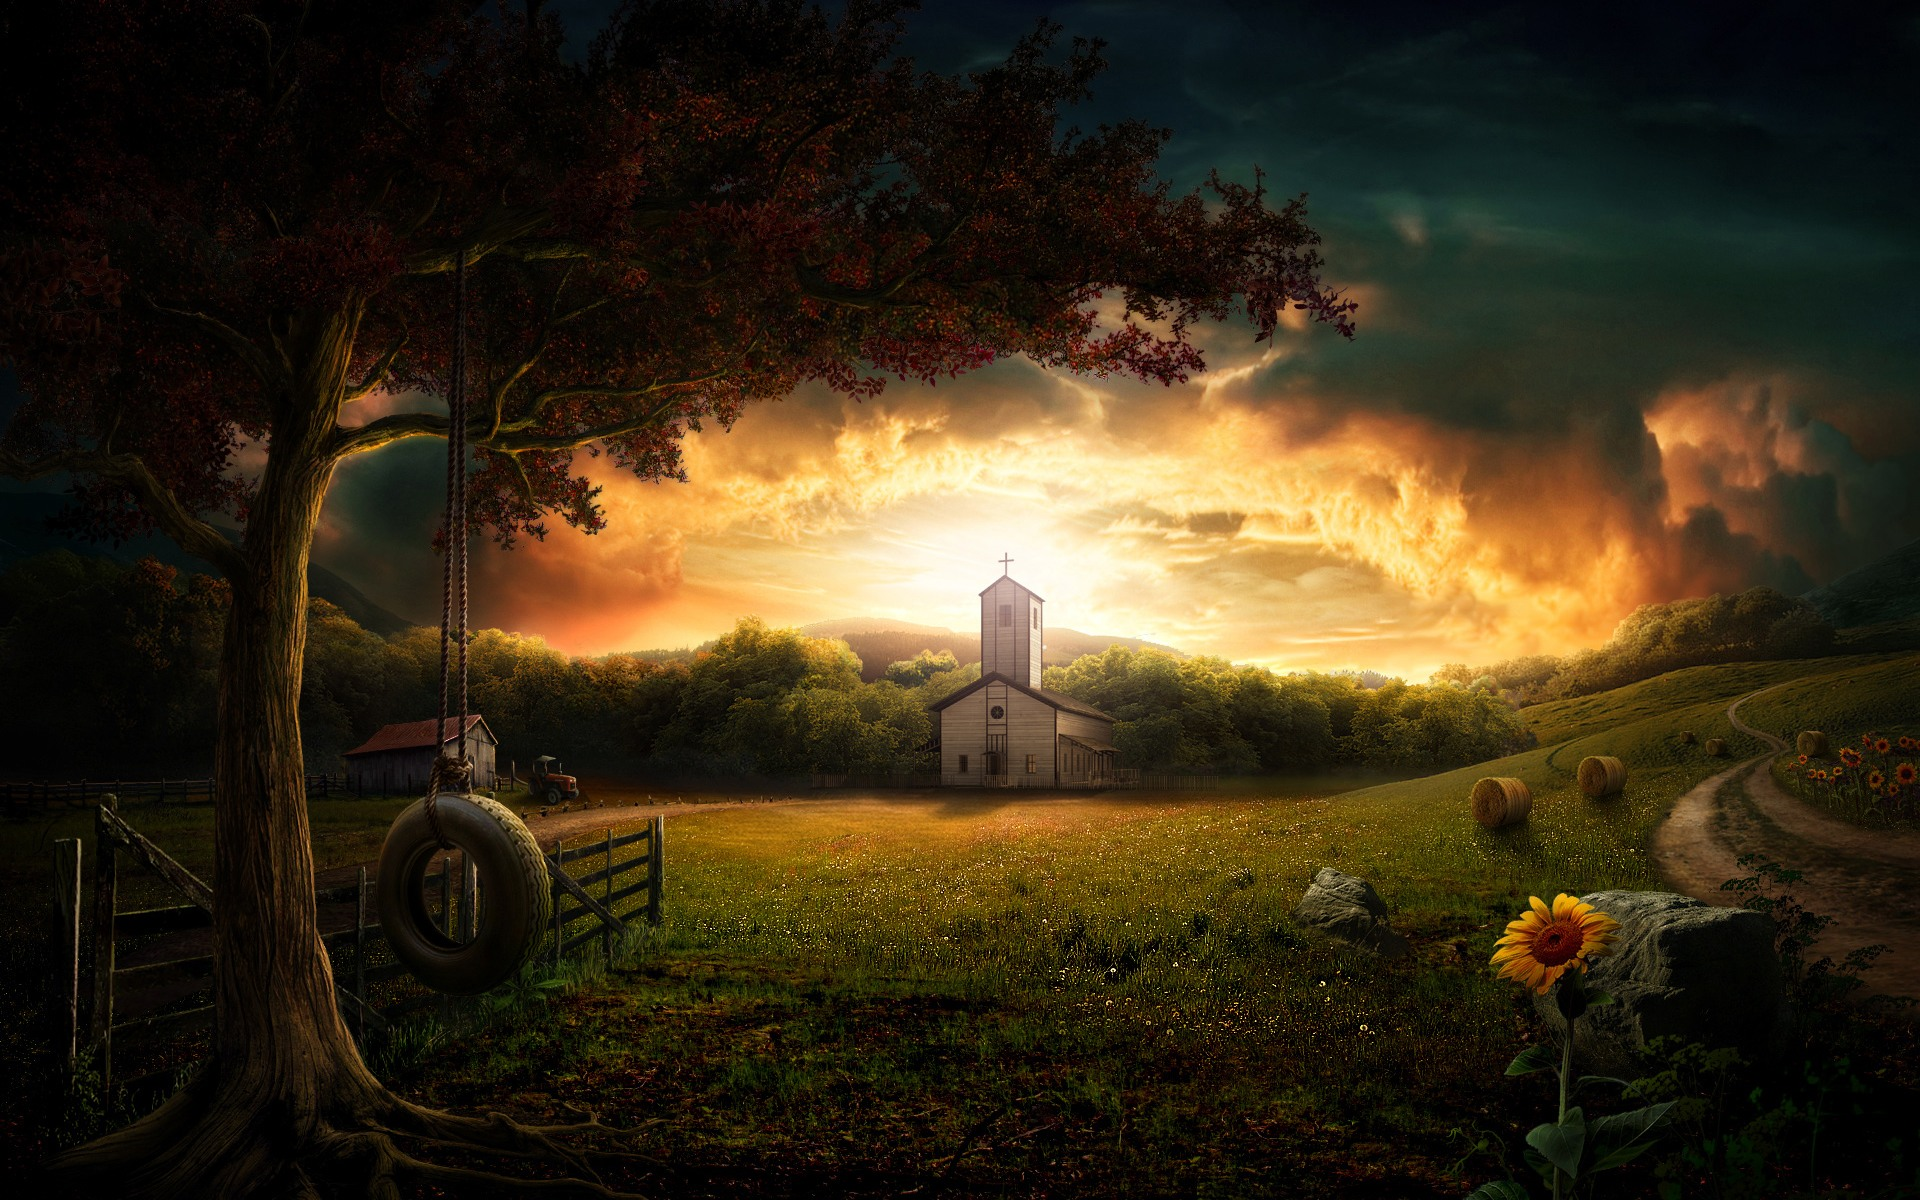 Free Country Scenes Wallpaper - WallpaperSafari